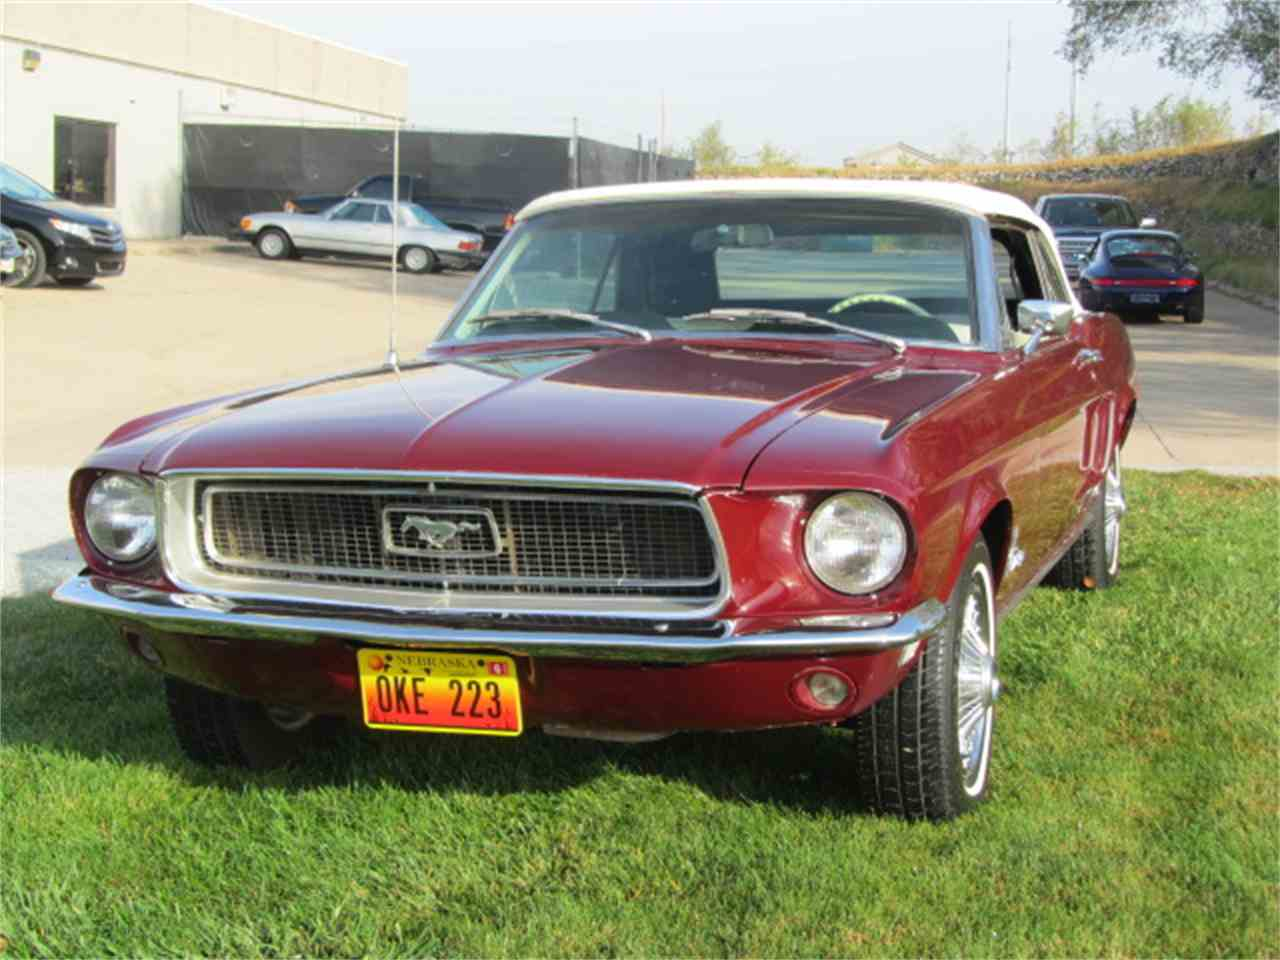 Large Picture of '68 Ford Mustang located in Nebraska - $35,900.00 Offered by Classic Auto Sales - JOGK